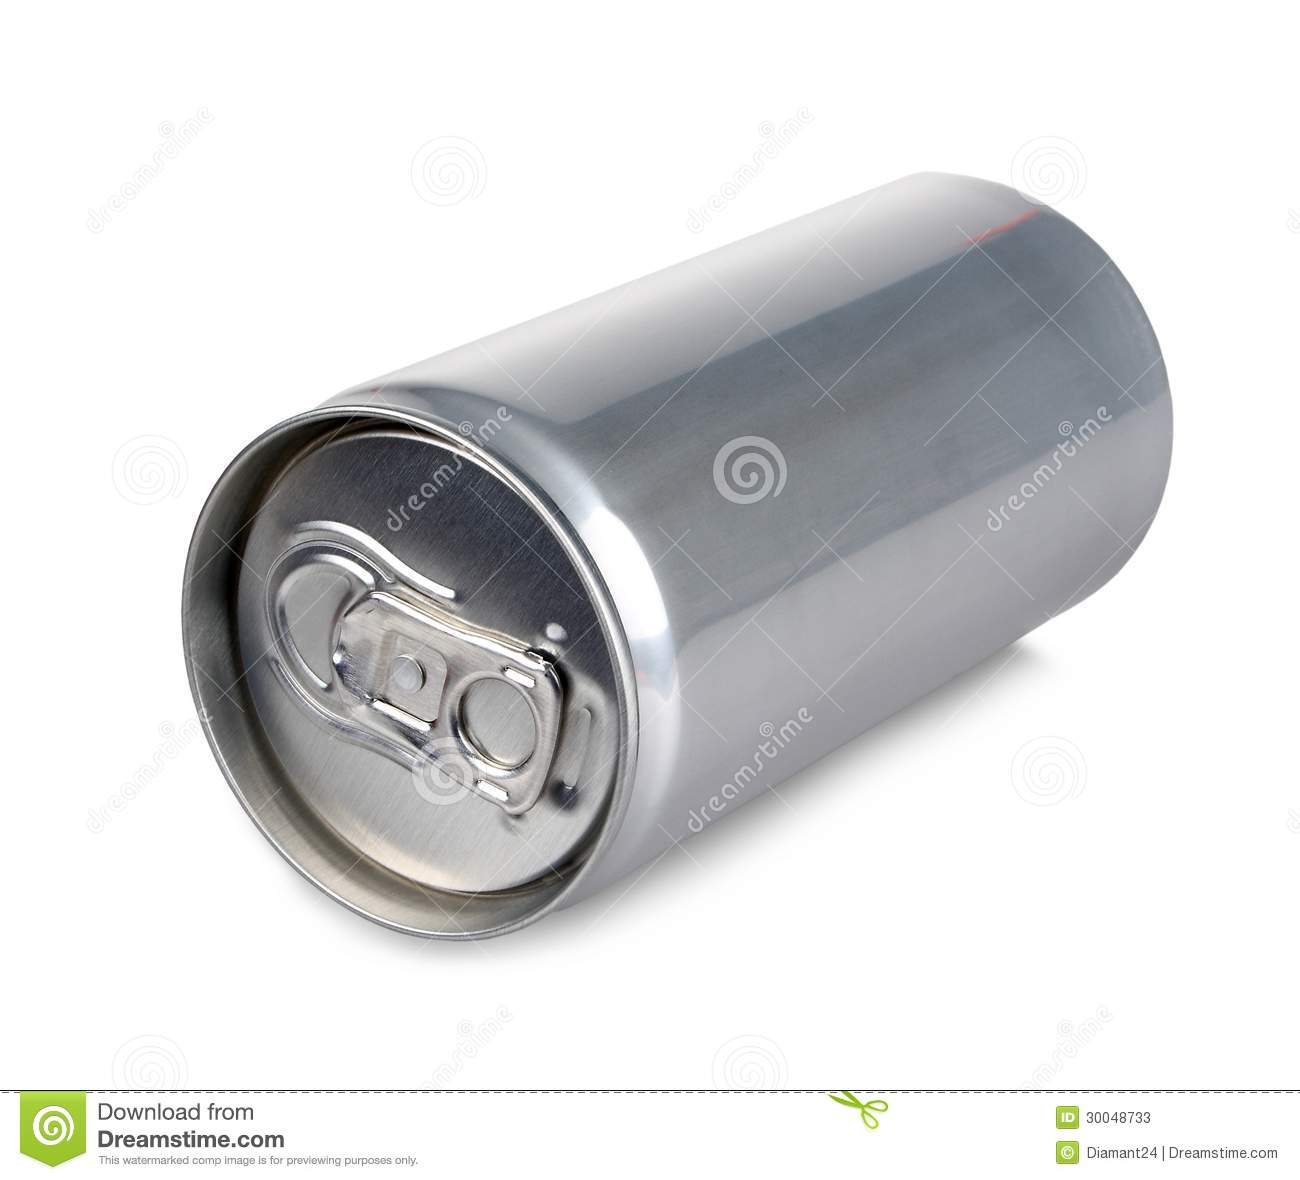 More similar stock images of ` Aluminum can of 200 ml prosecco, and ...